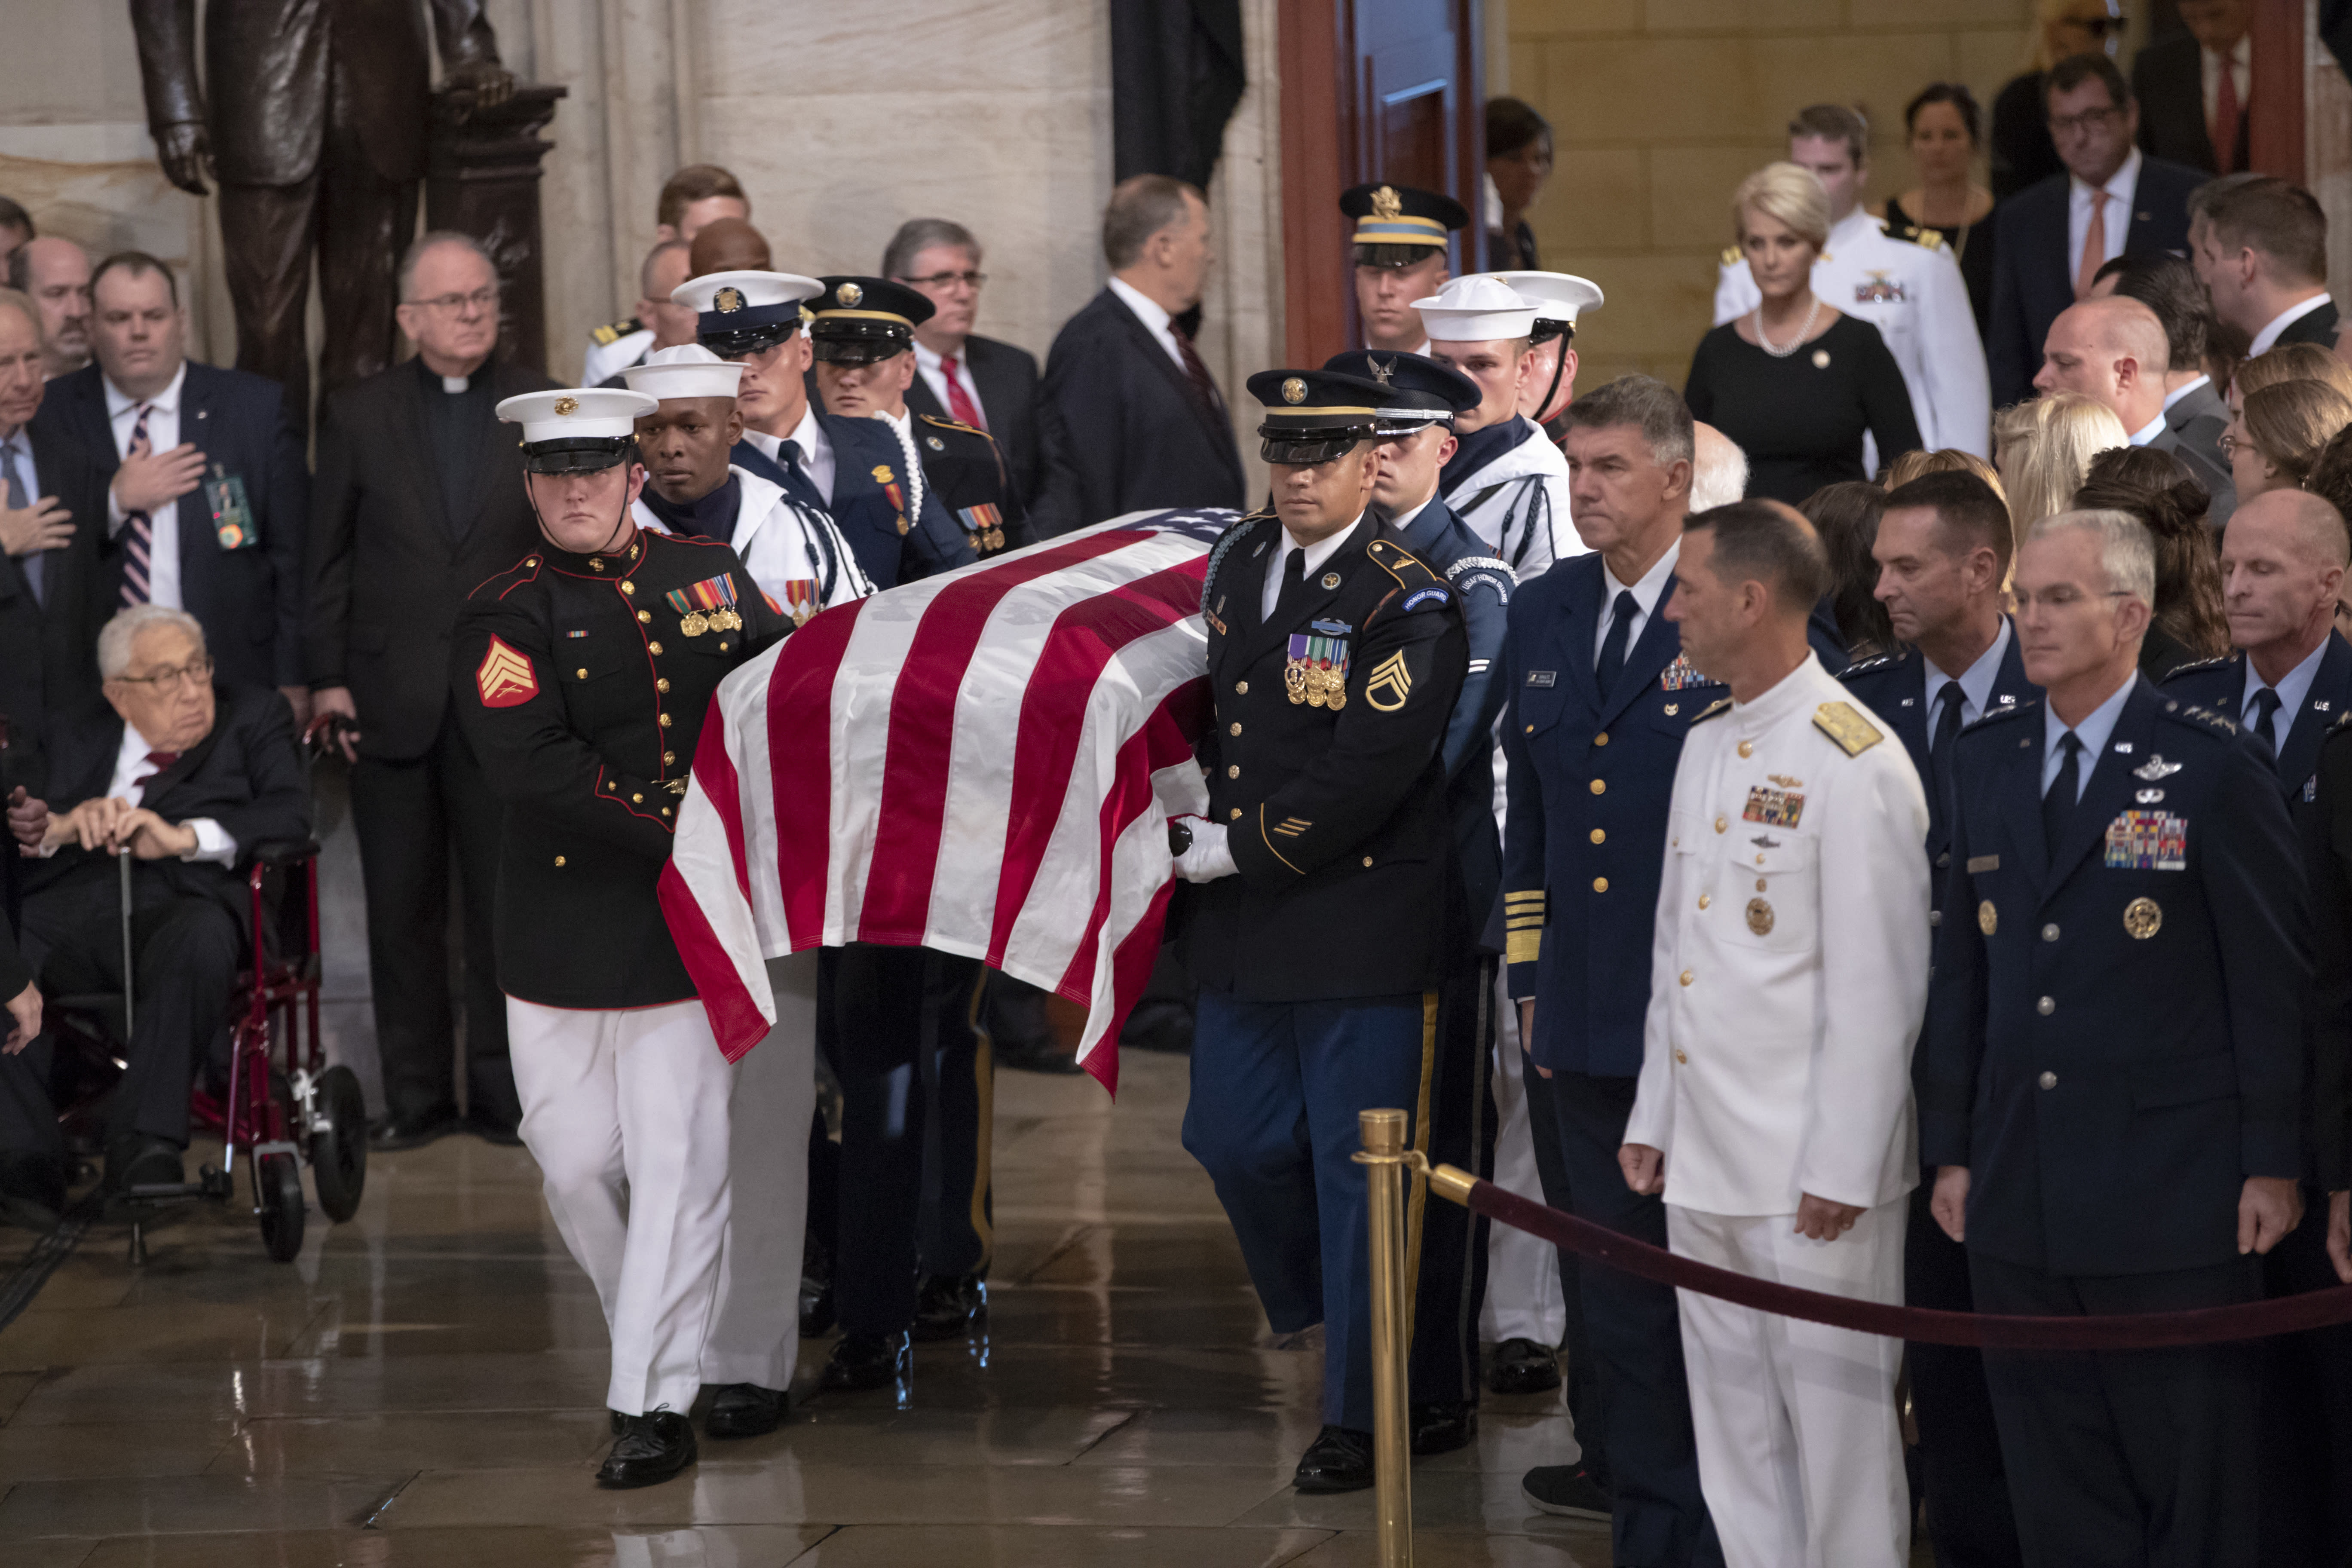 The flag-draped casket bearing the remains of Sen. John McCain of Arizona, who lived and worked in Congress over four decades, is carried into the U.S. Capitol rotunda, followed by his widow, Cindy McCain, upper right, for a farewell ceremony and public visitation, Friday, Aug. 31, 2018, in Washington. (AP Photo/J. Scott Applewhite)